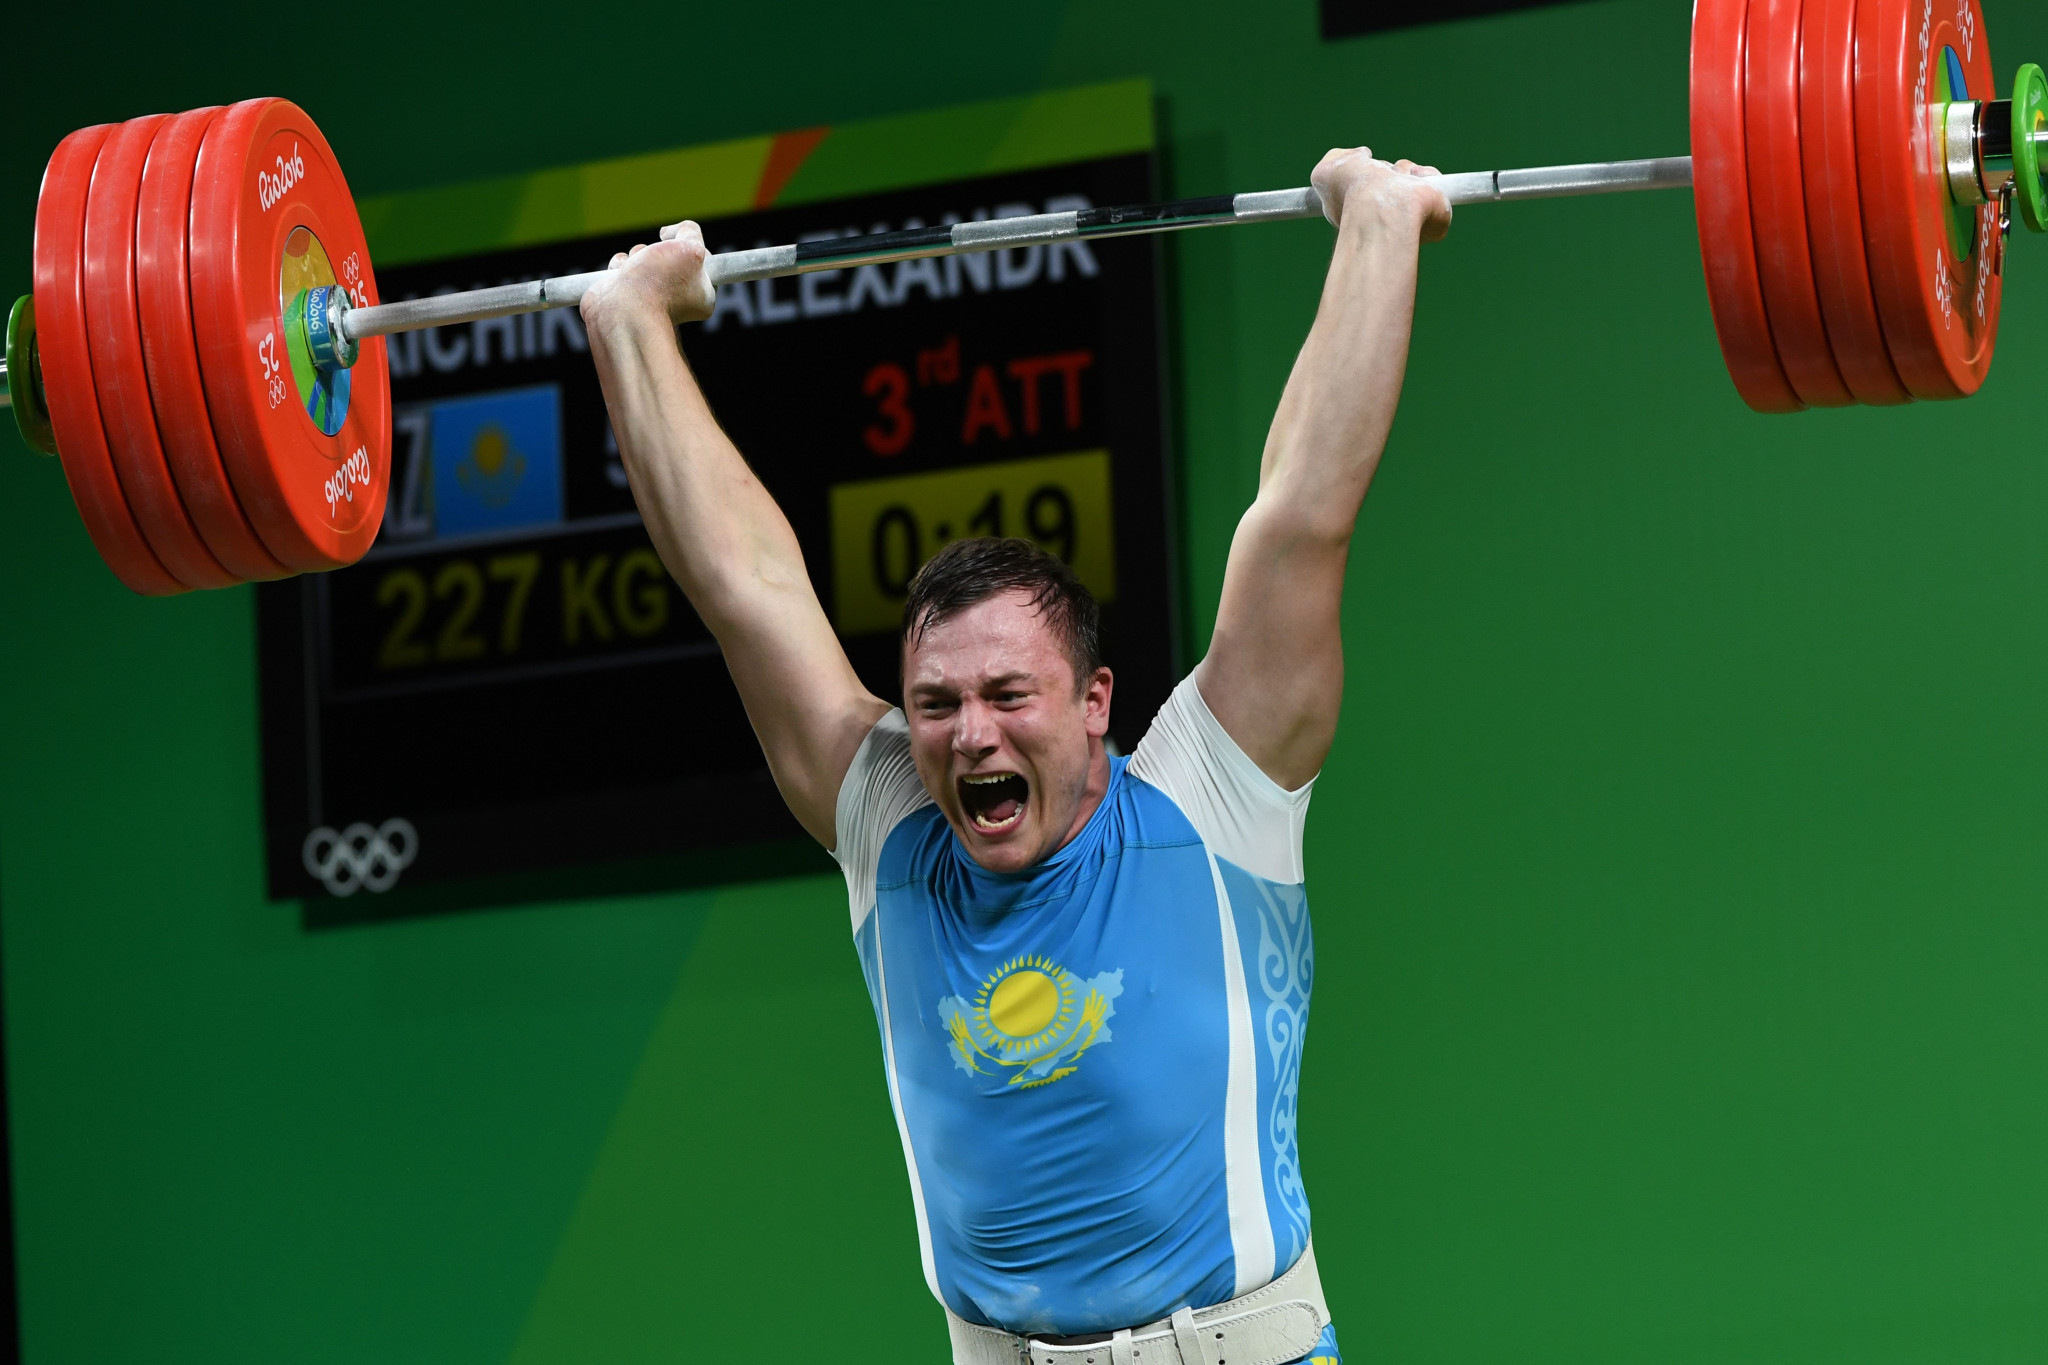 Kazakhstan claims strong support for decision to challenge Olympic weightlifting qualifying system